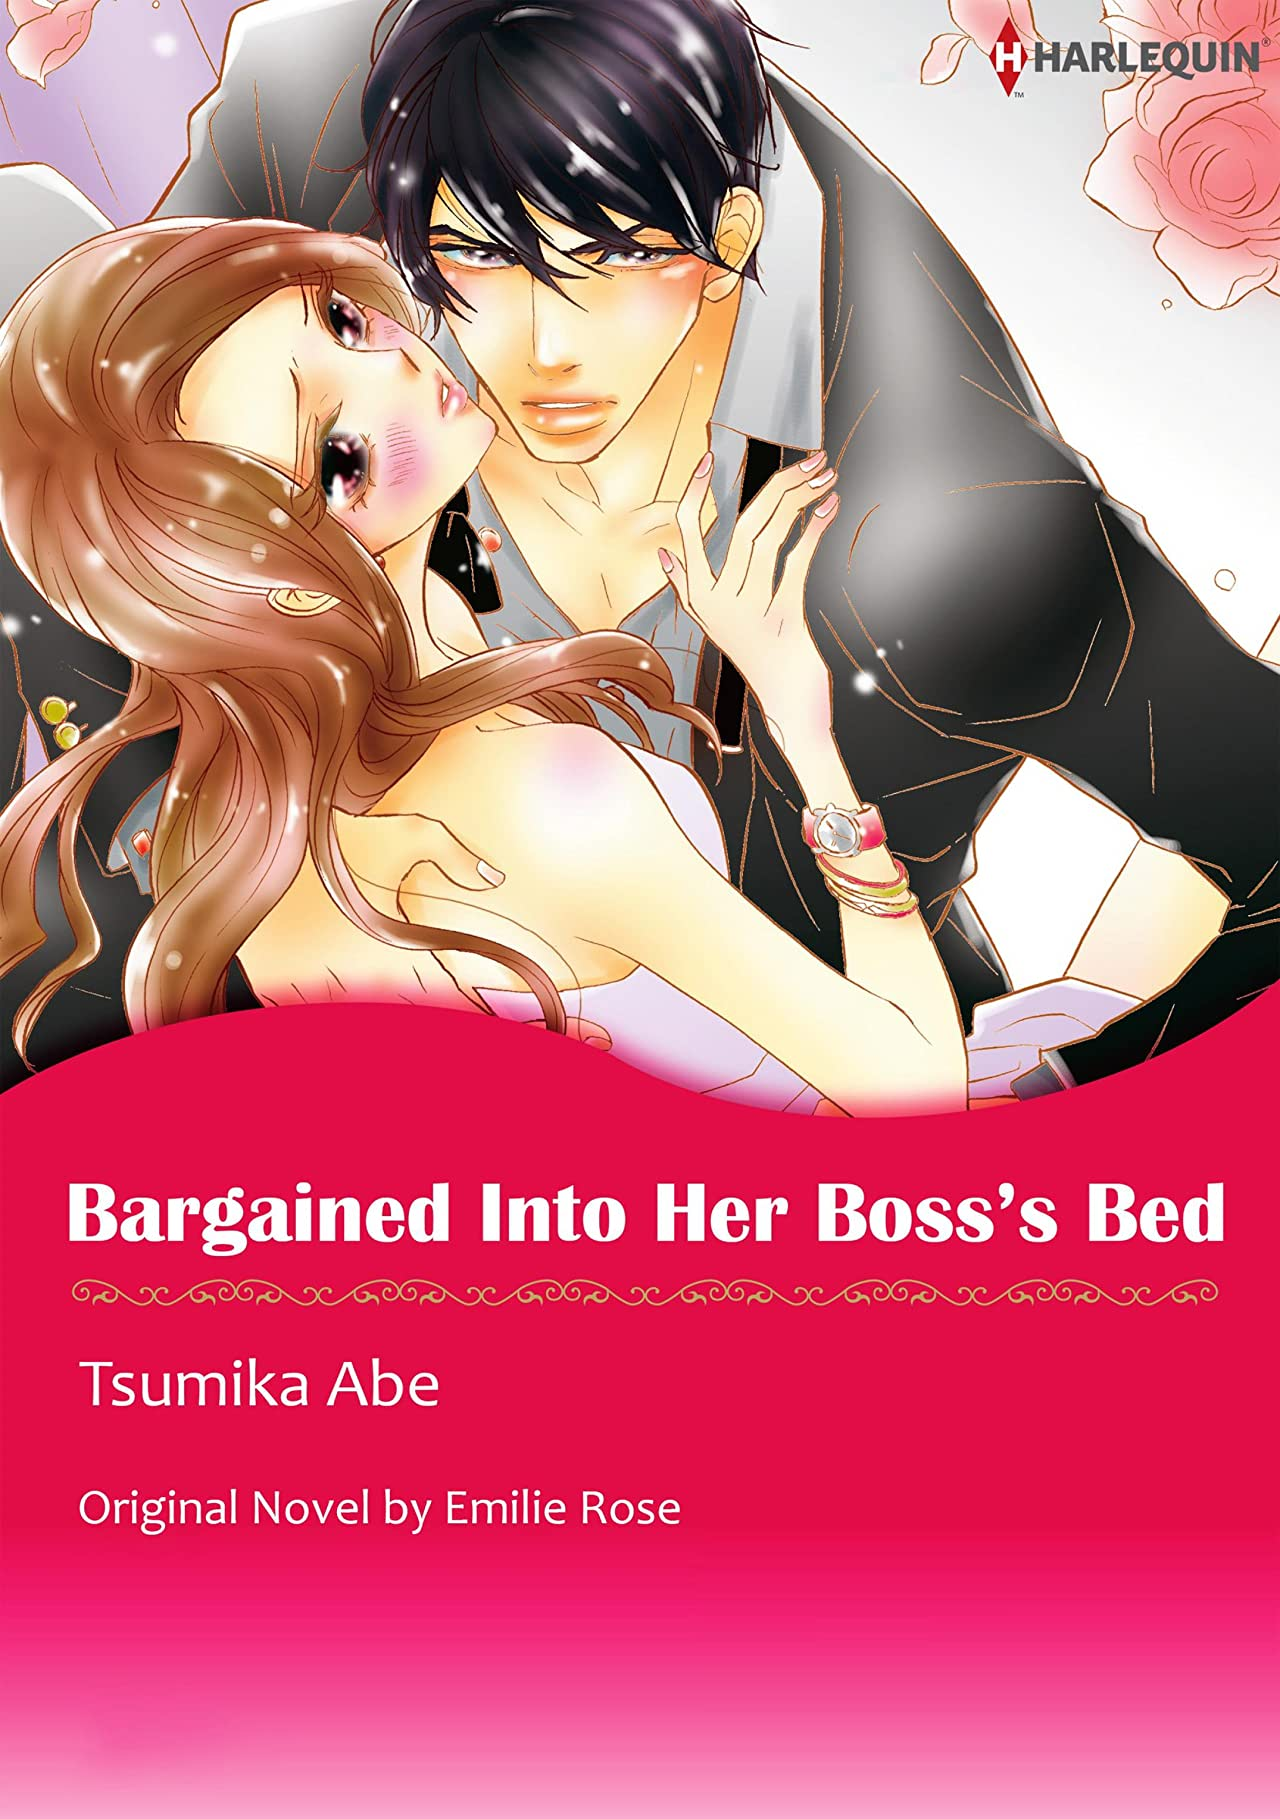 Bargained Into Her Boss's Bed